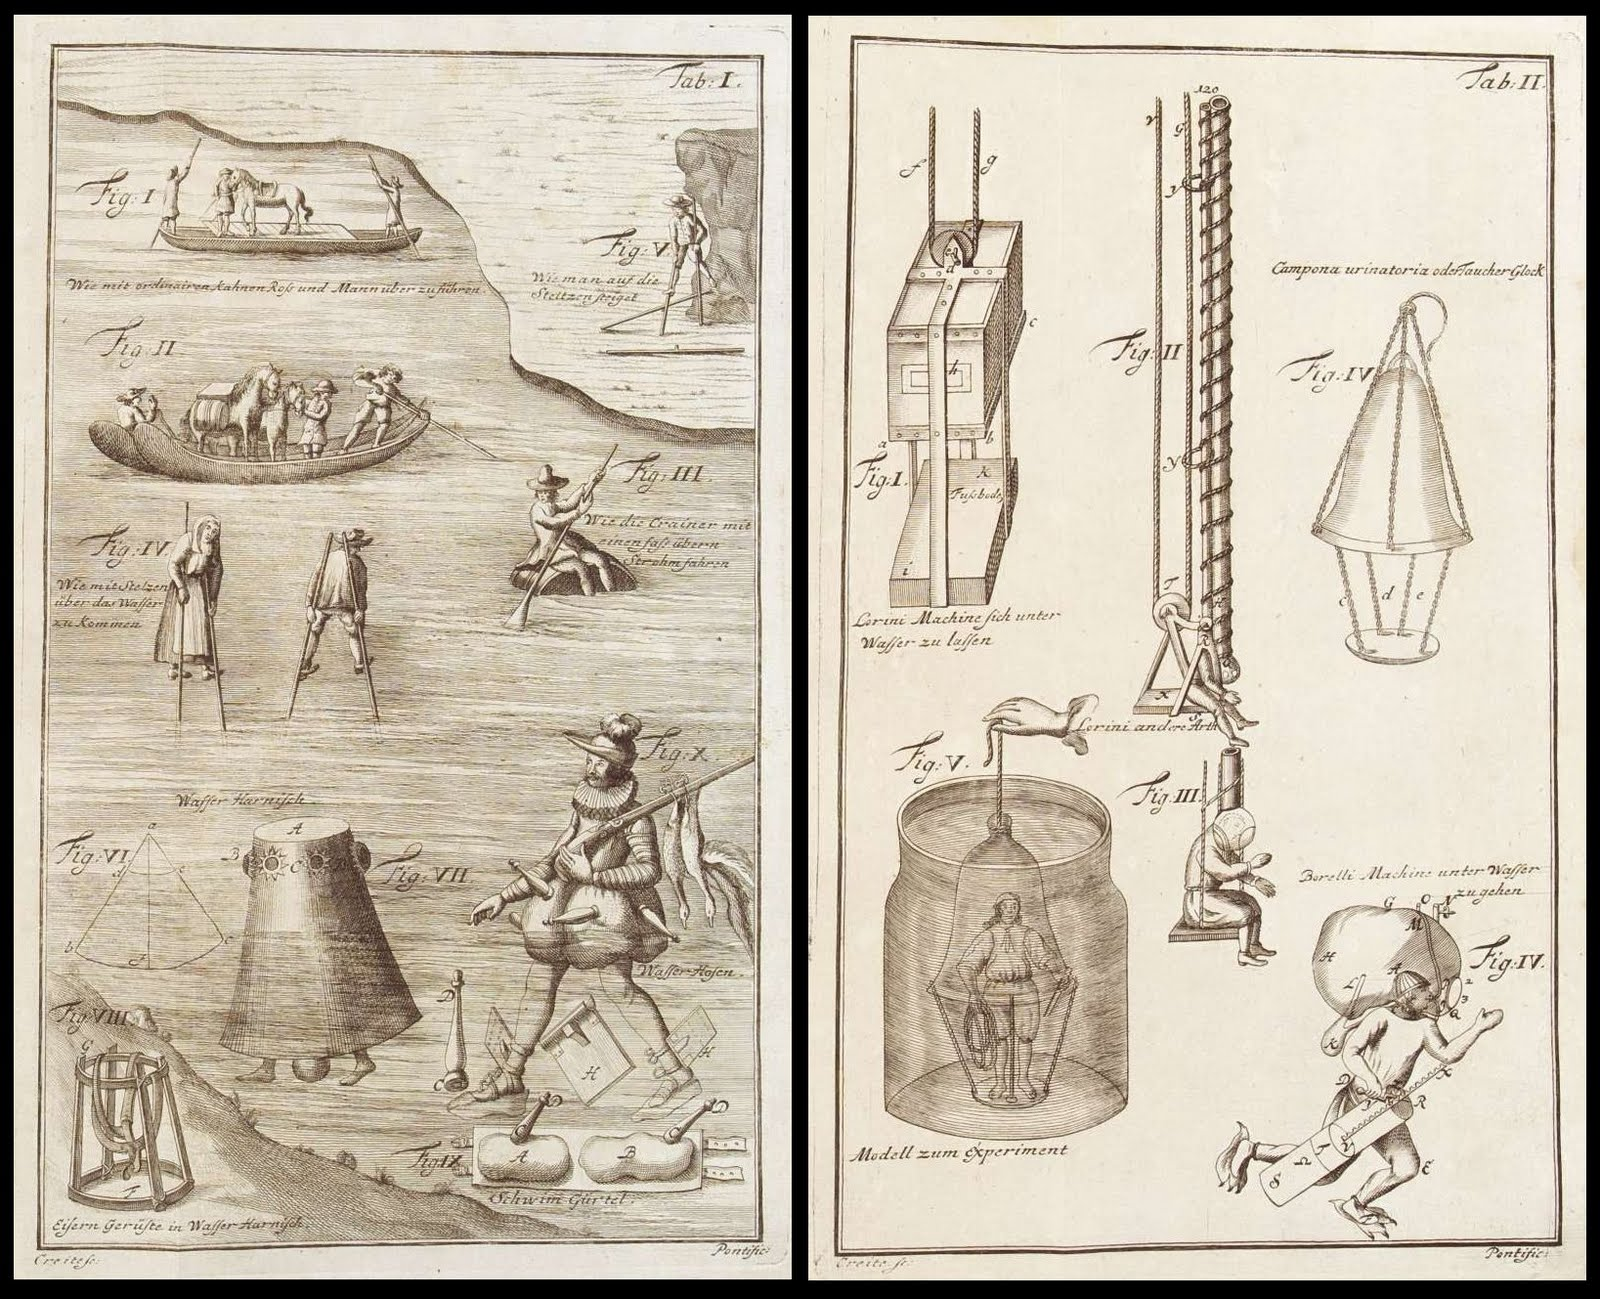 illustration plates of scuba and flotation devices